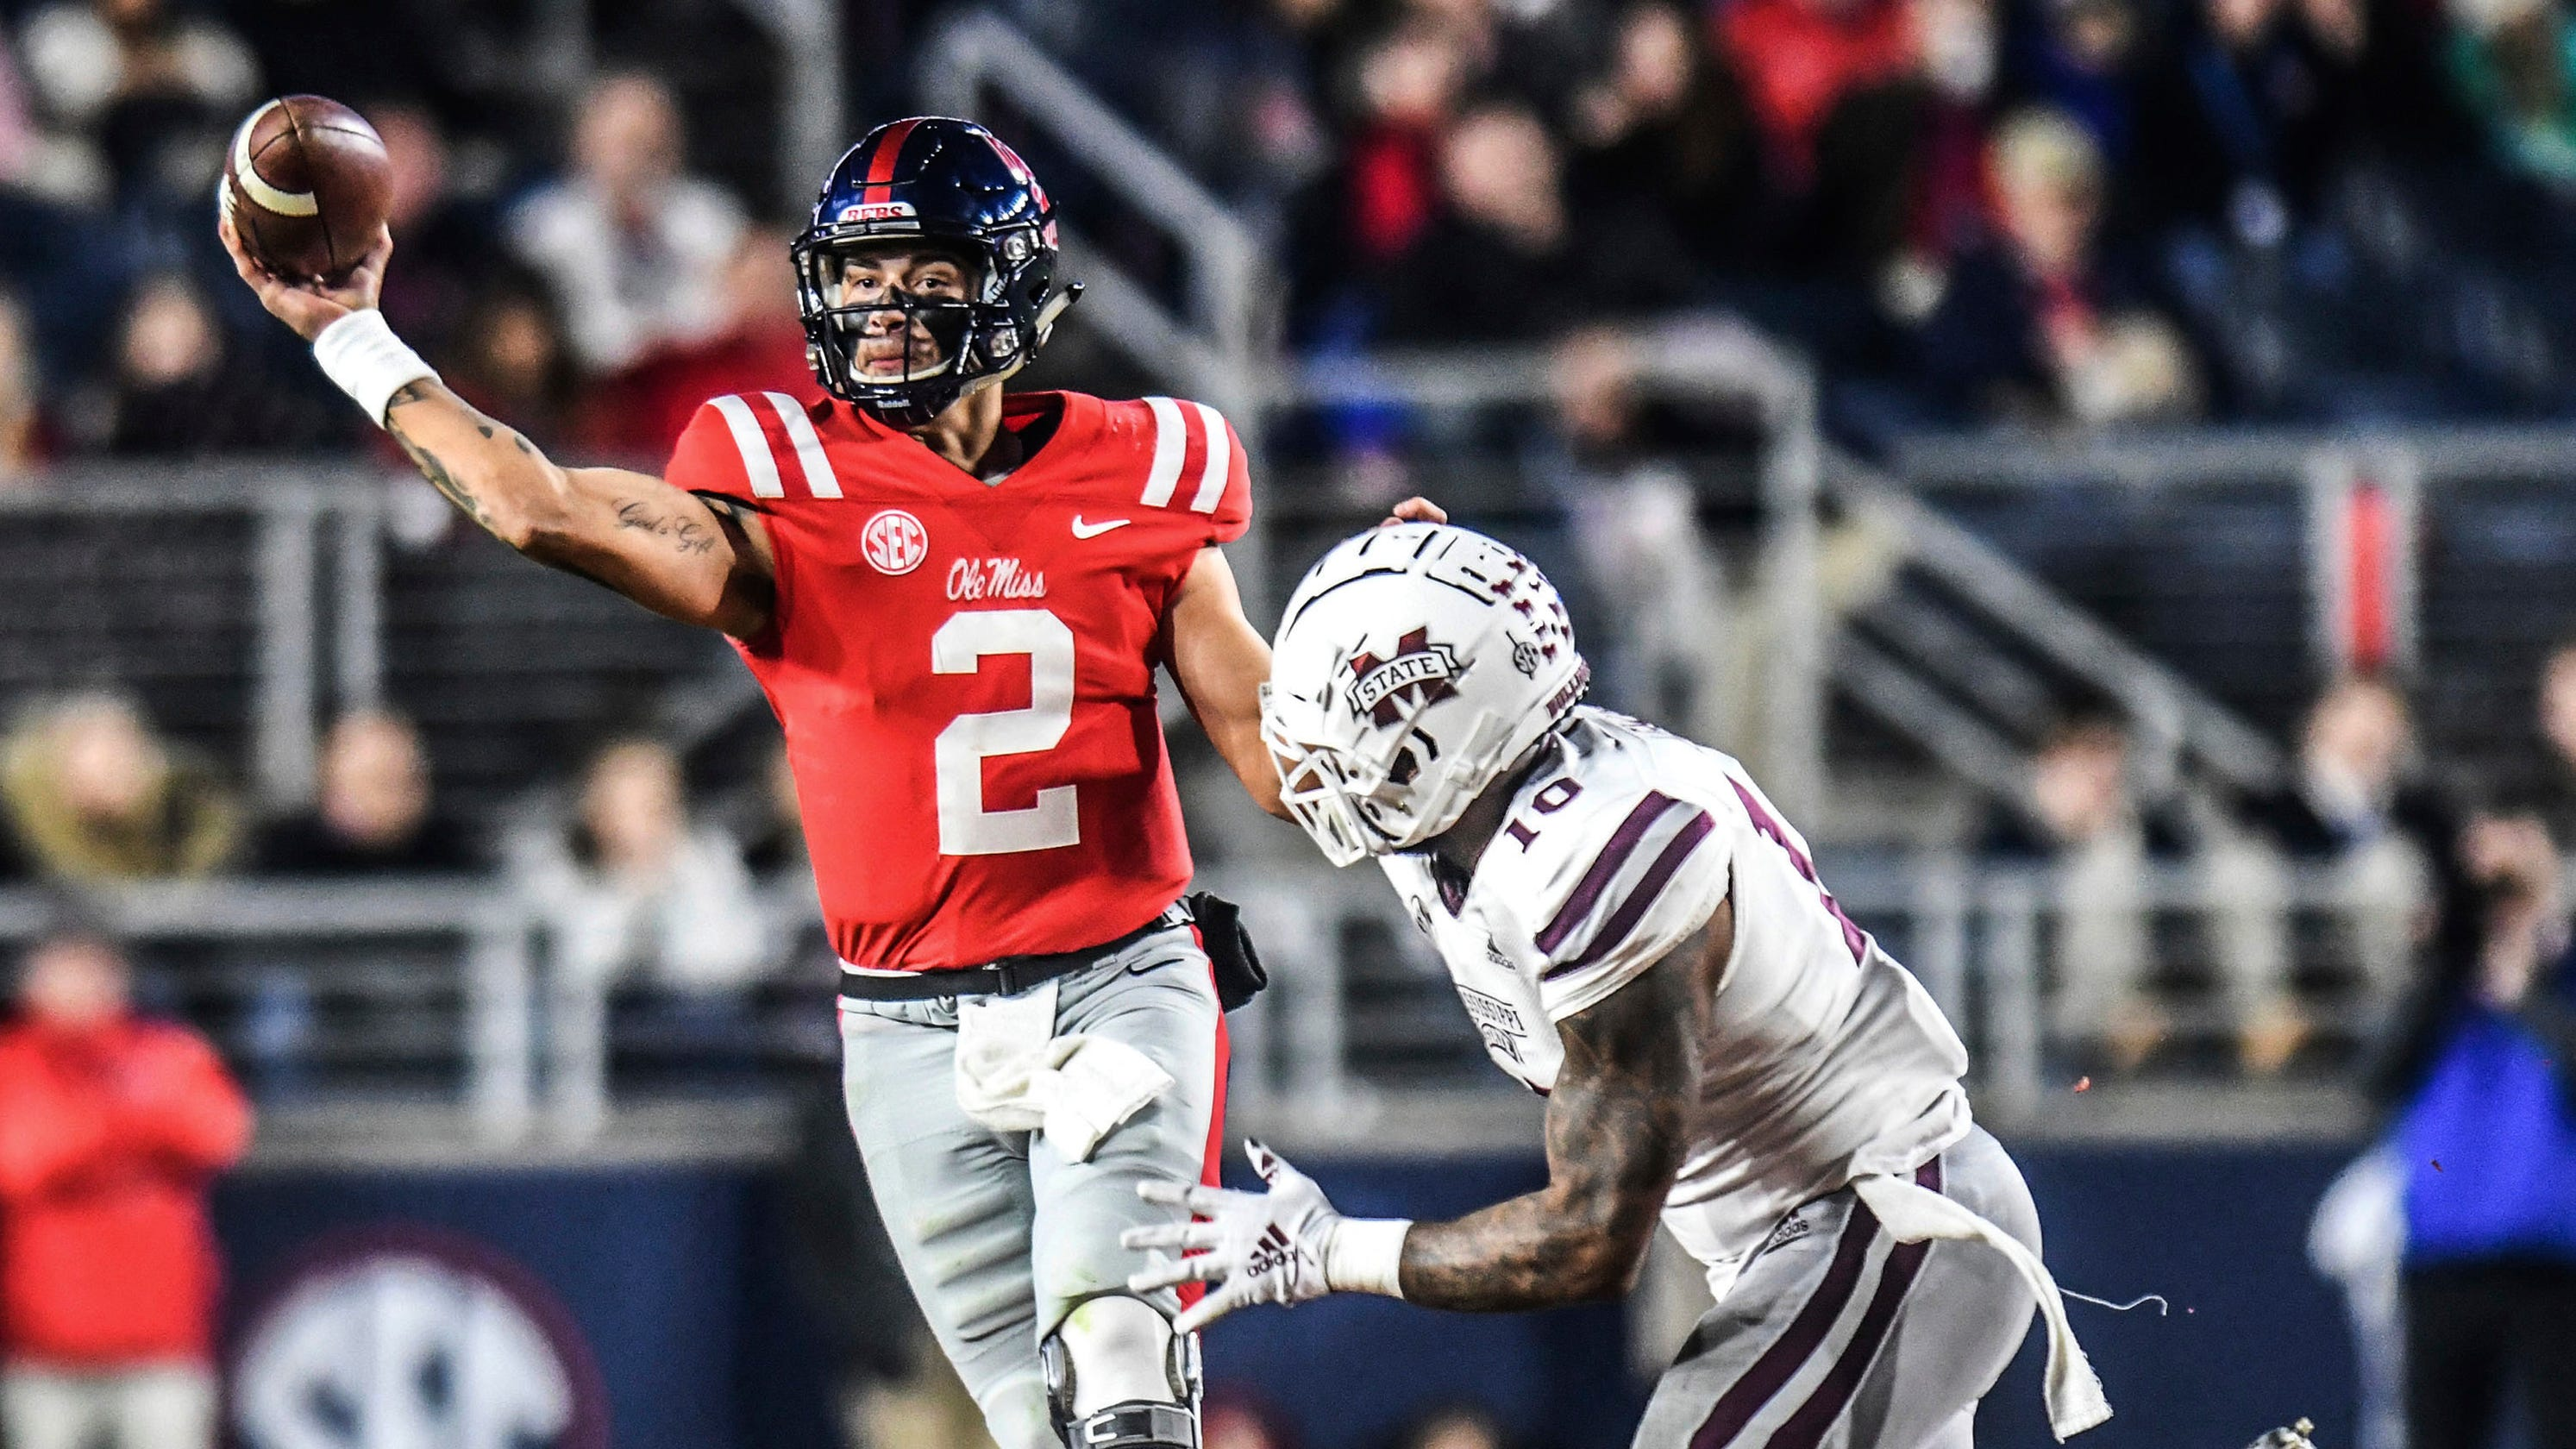 Ole Miss Schedule 2020 SEC football: 2020 schedules for Mississippi State, Ole Miss